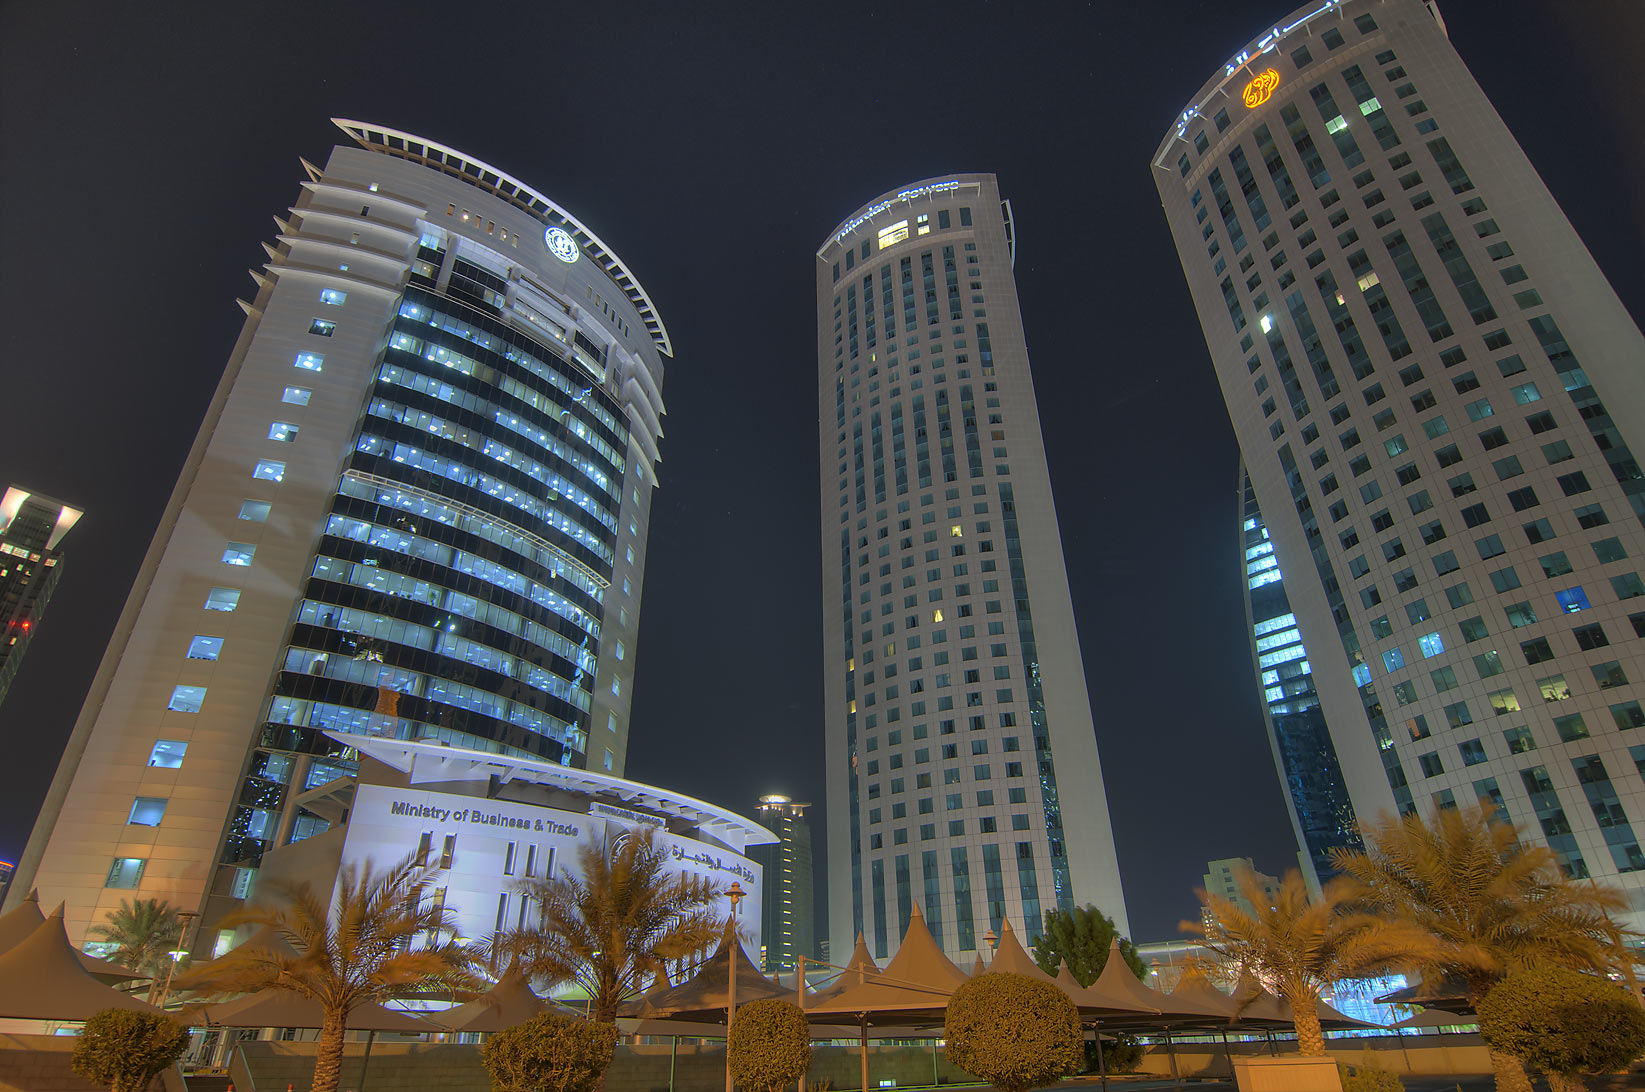 Ministry of Business and Trade and Al Fardan Towers in West Bay. Doha, Qatar